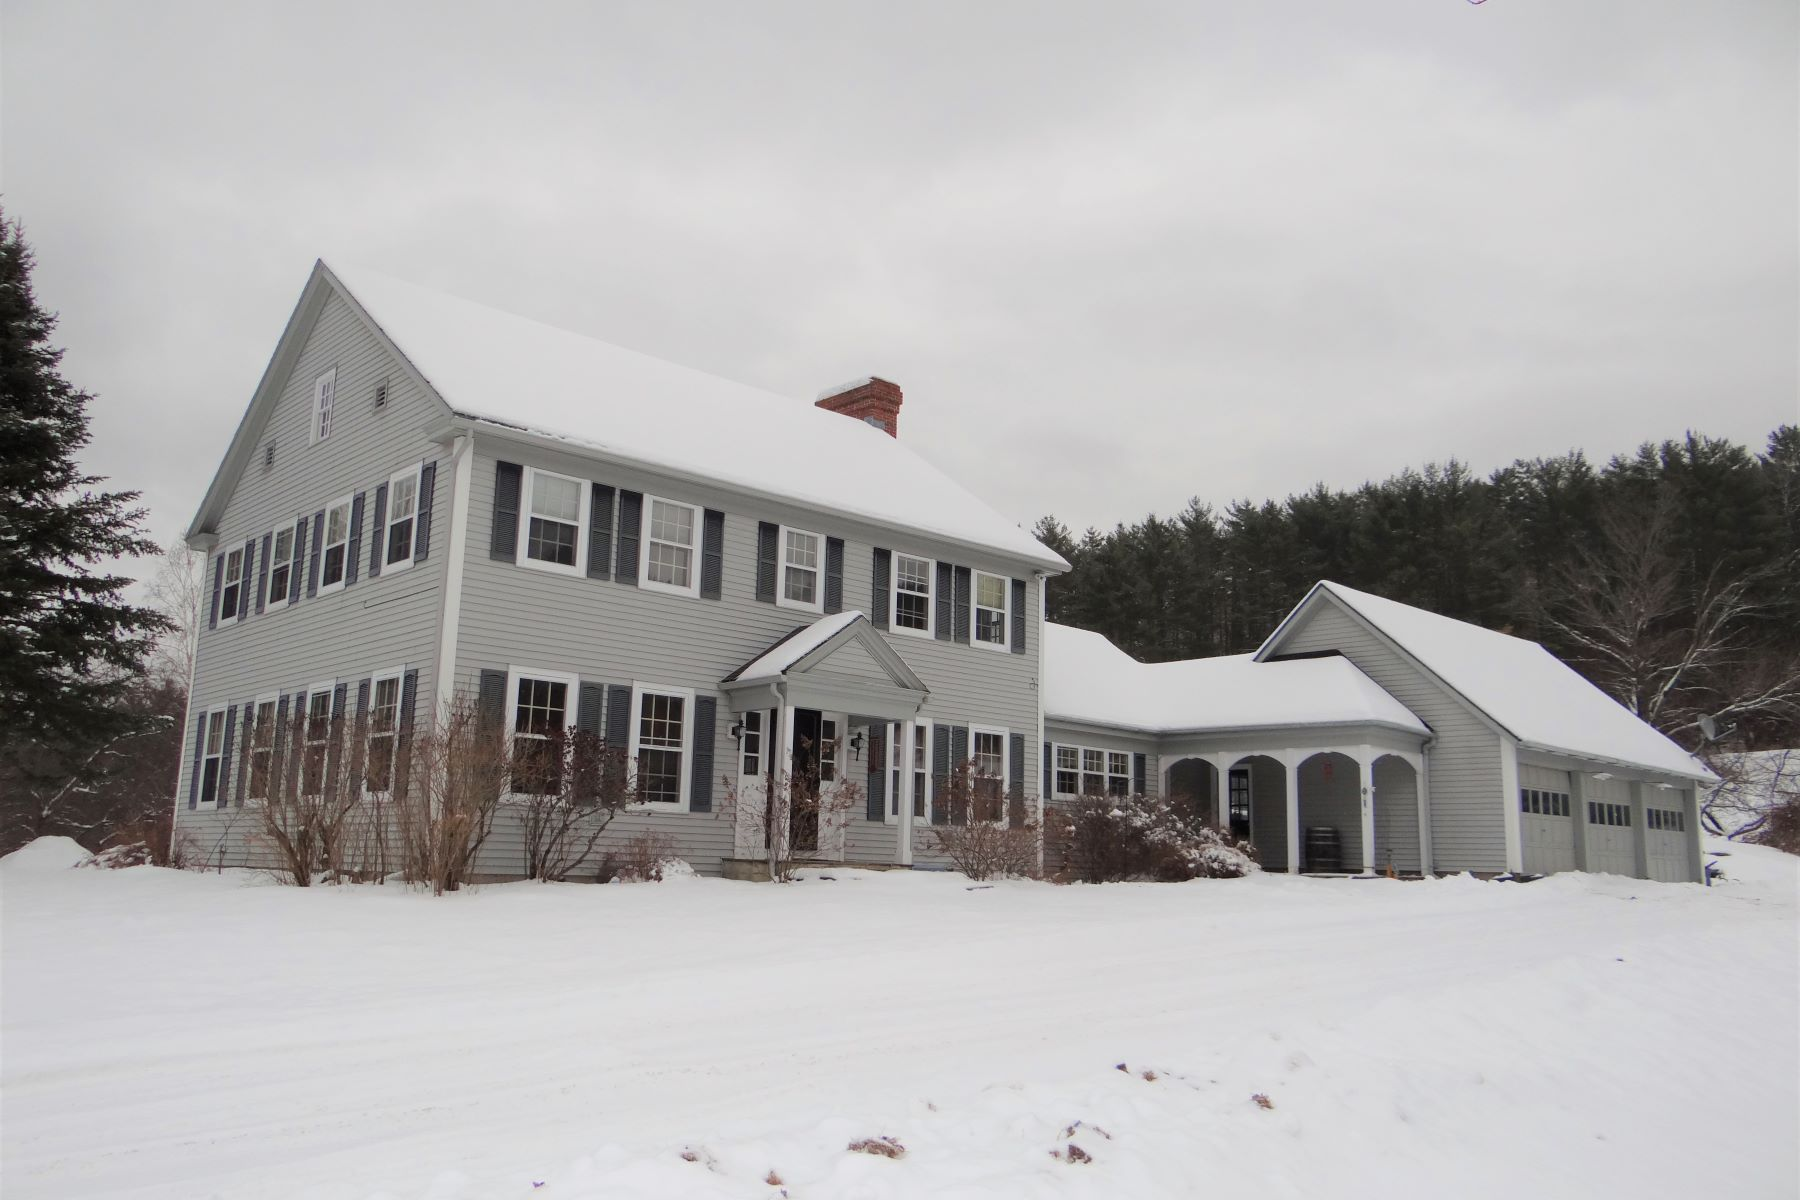 Single Family Homes for Sale at Four Bedroom Colonial on 11.9 Acres in Orford 35 Lower Stonehouse Mountain Road Orford, New Hampshire 03777 United States